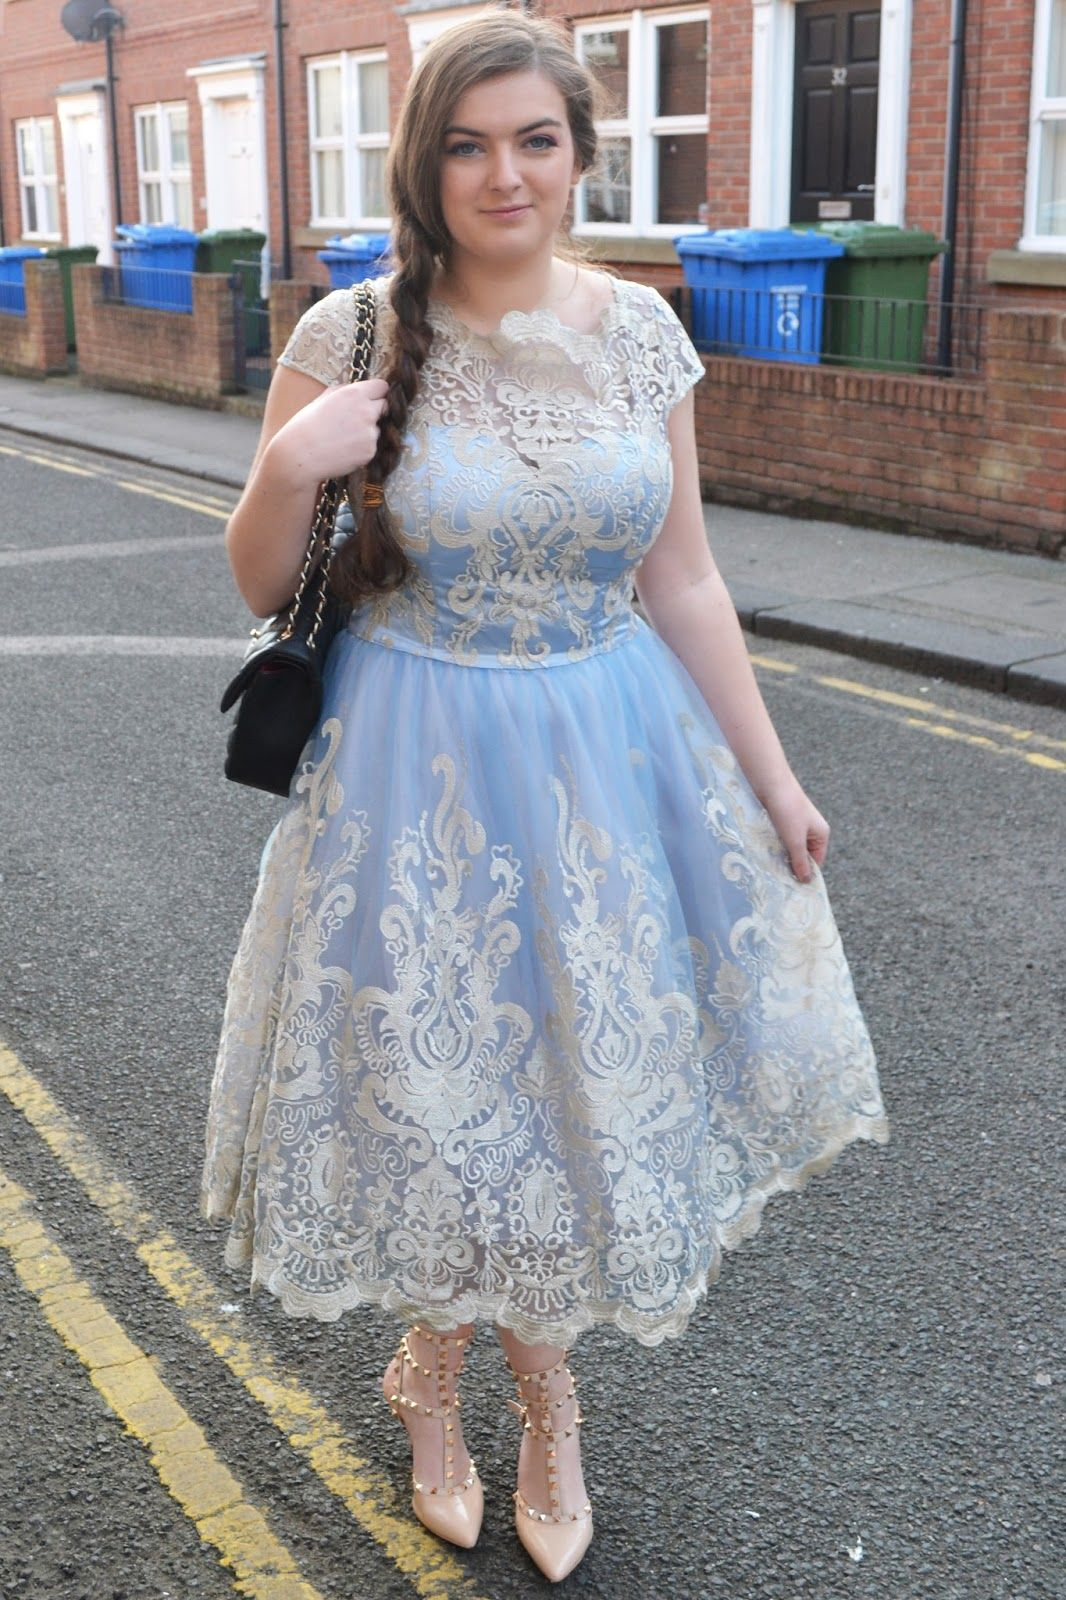 Find great deals on eBay for elsa dress. Shop with confidence.